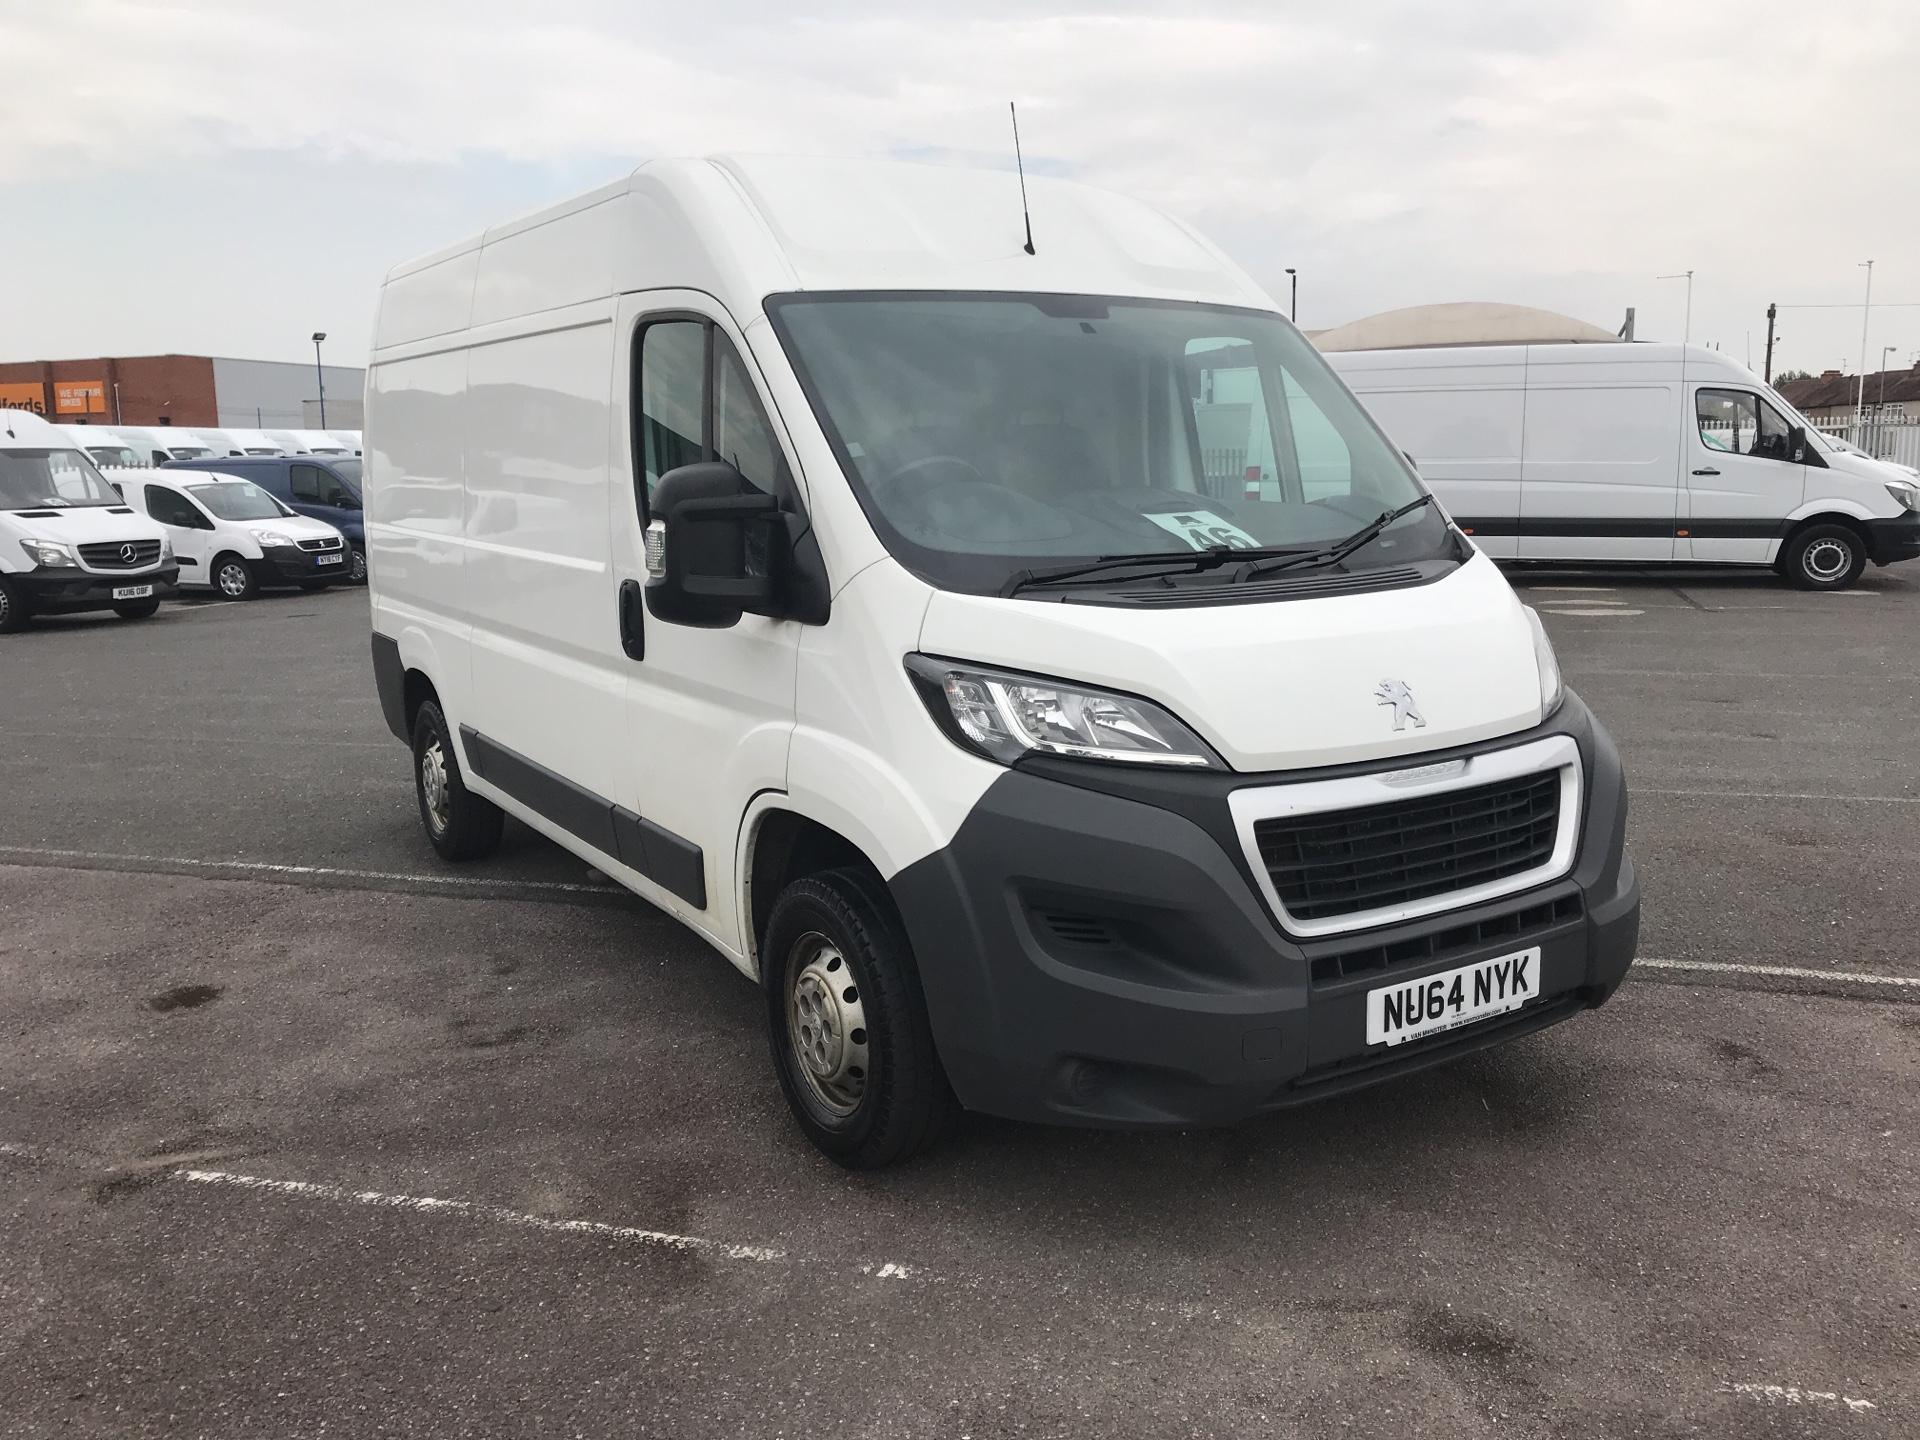 2014 Peugeot Boxer  L3 H2 2.2 130PS EURO 5 *VALUE RANGE VEHICLE CONDITION REFLECTED IN PRICE* (NU64NYK)